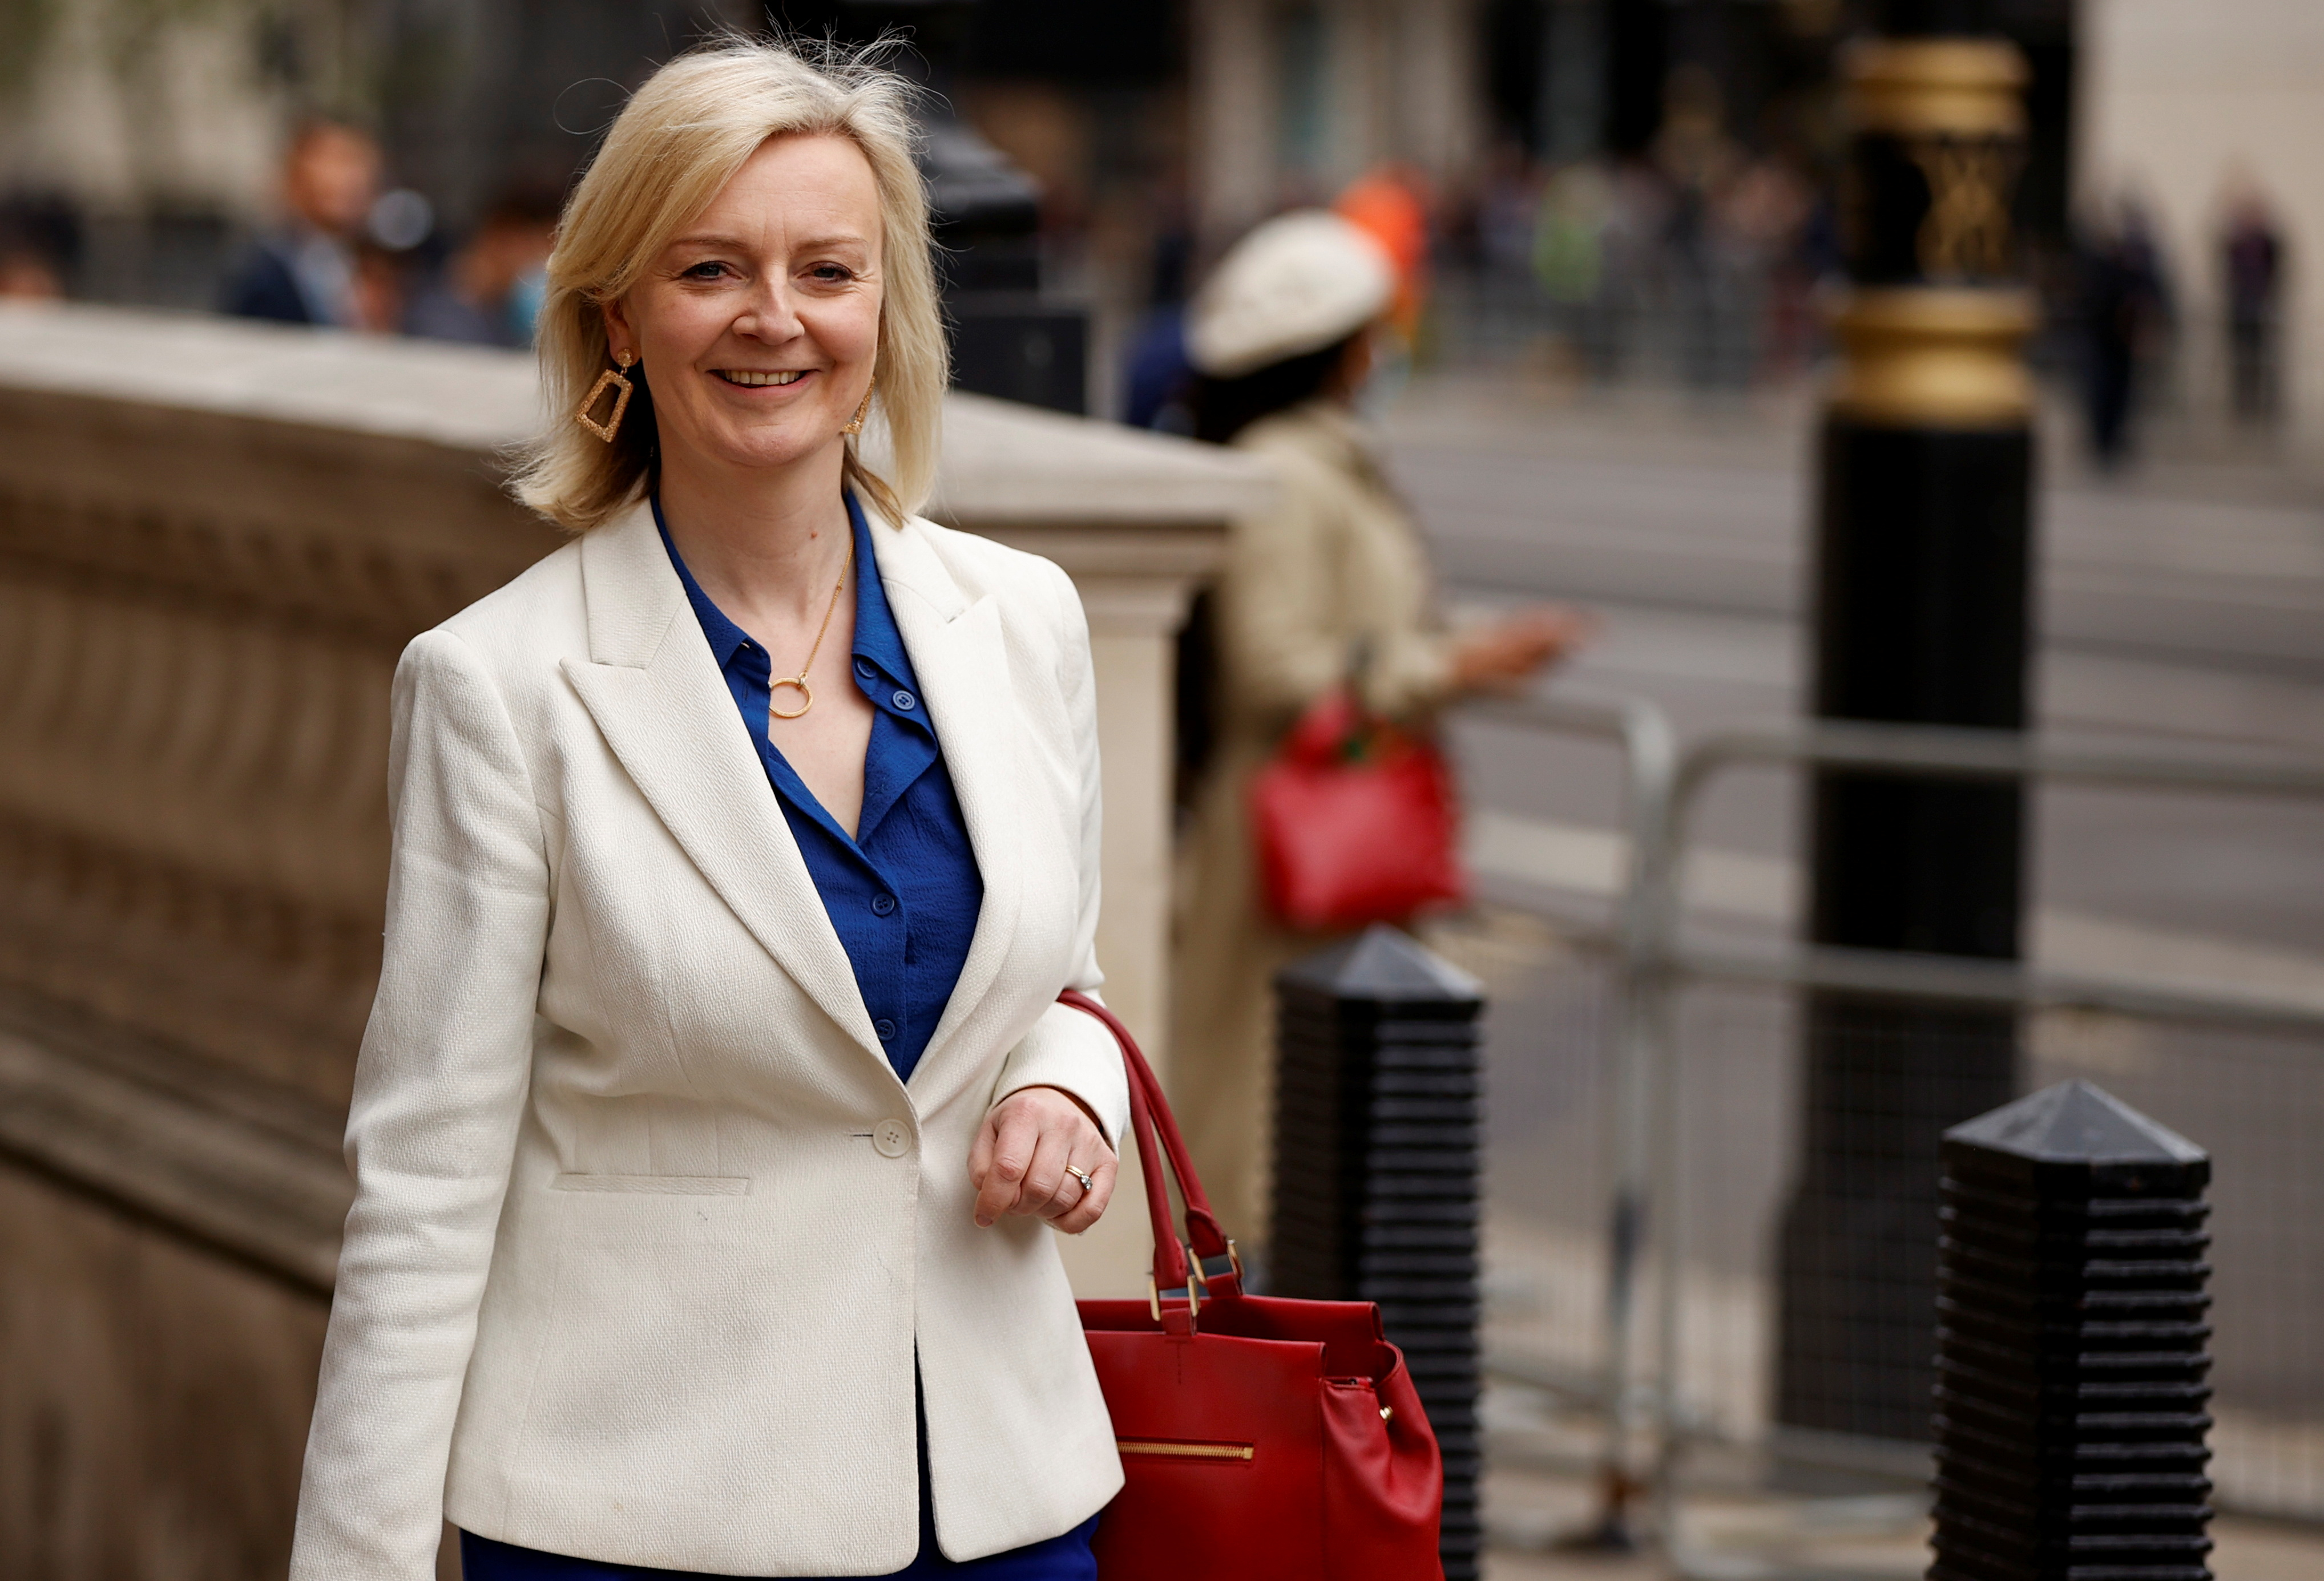 Britain's Trade Minister Liz Truss walks after the ceremony of State Opening of Parliament at the Palace of Westminster, amid the coronavirus disease (COVID-19) restrictions, in London, Britain, May 11, 2021. REUTERS/John Sibley/Files